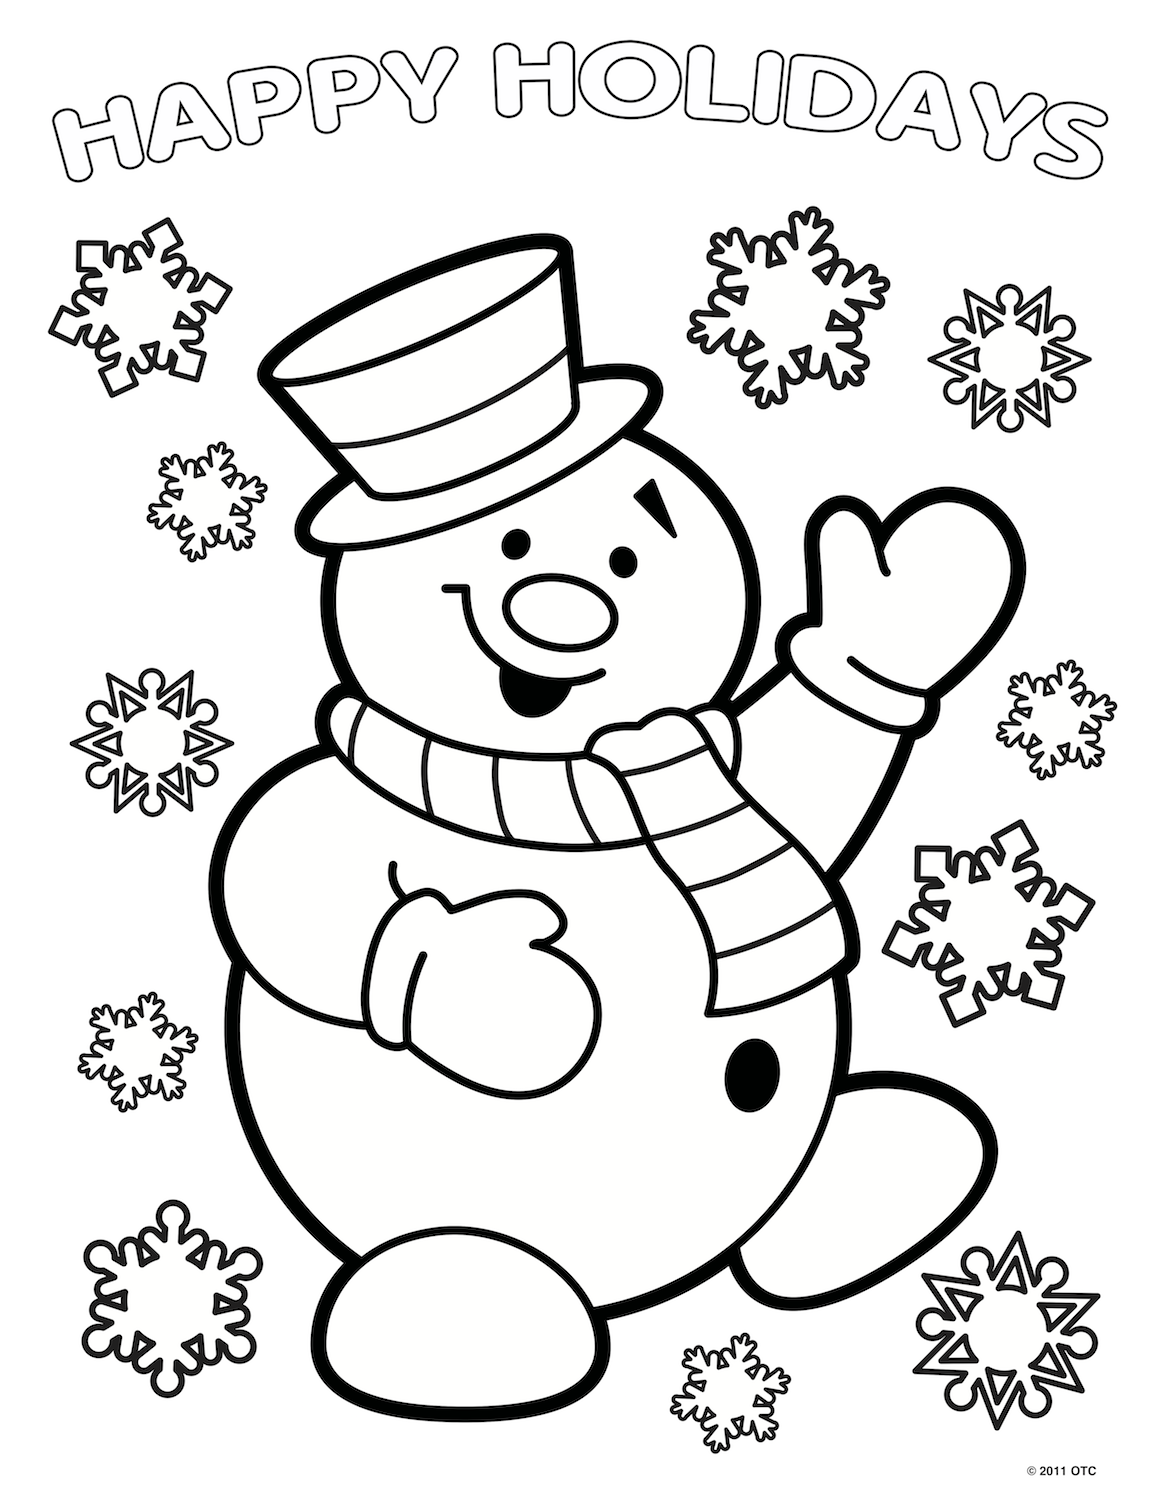 This Beautiful Snowman Is Originally From FreeFun Christmas And We Added The Happy Holidays For Extra Coloring Fun To Download Original Version Click